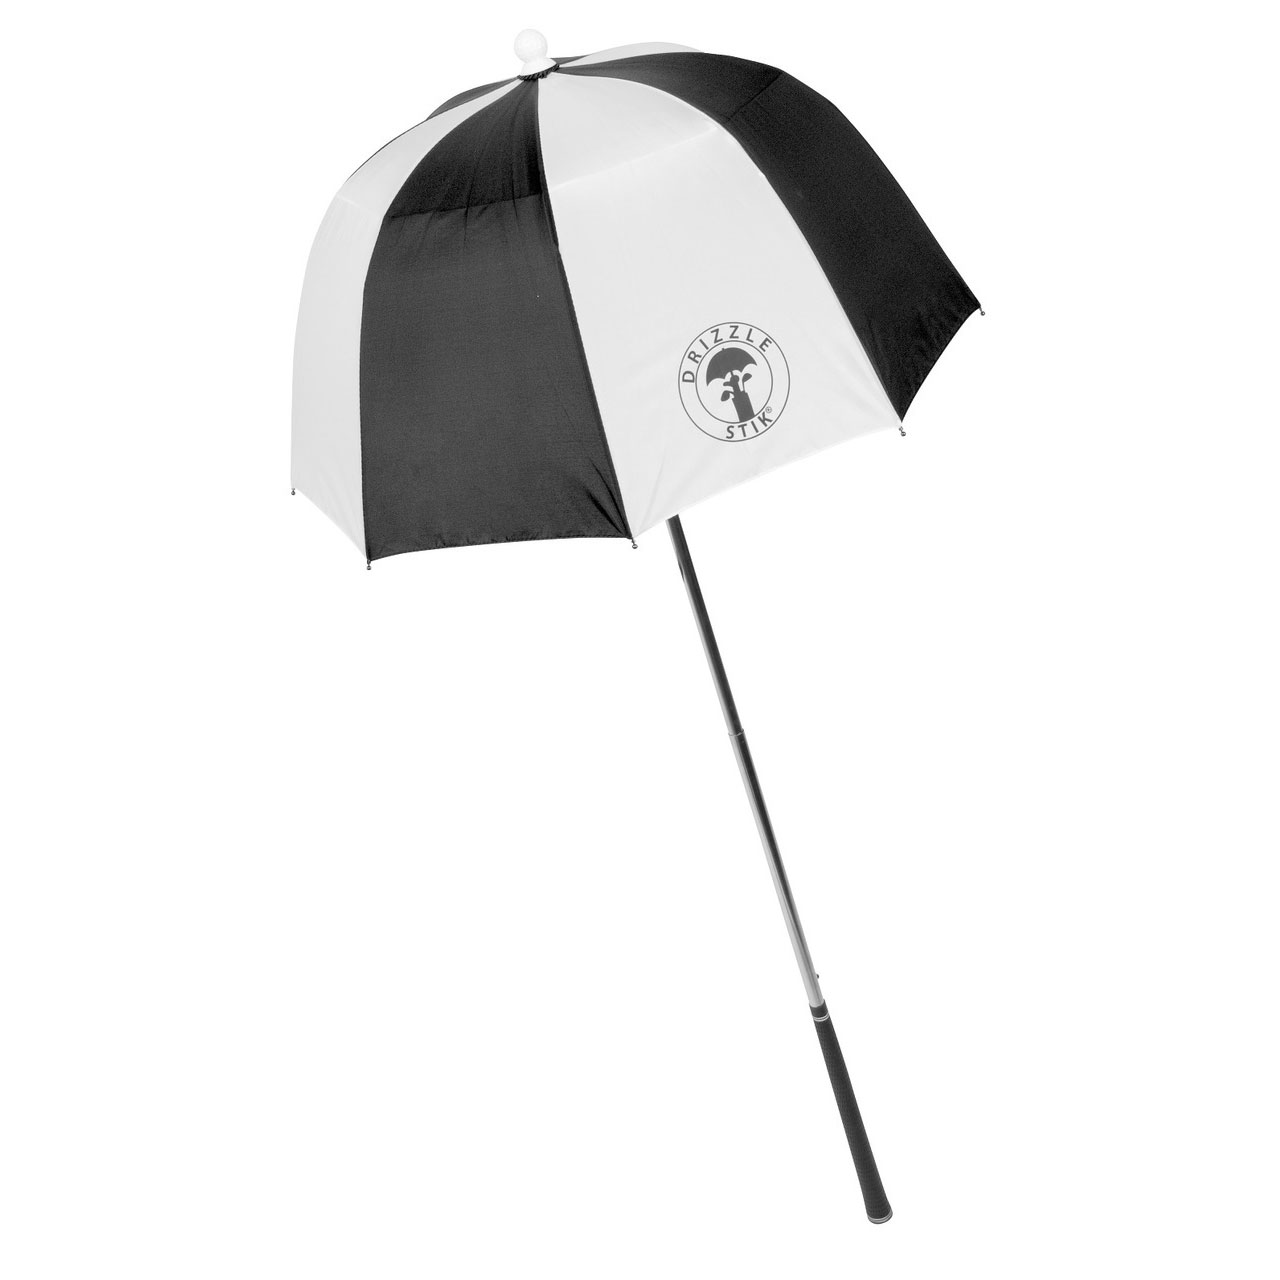 Drizzle Stick Flex Golf Umbrella